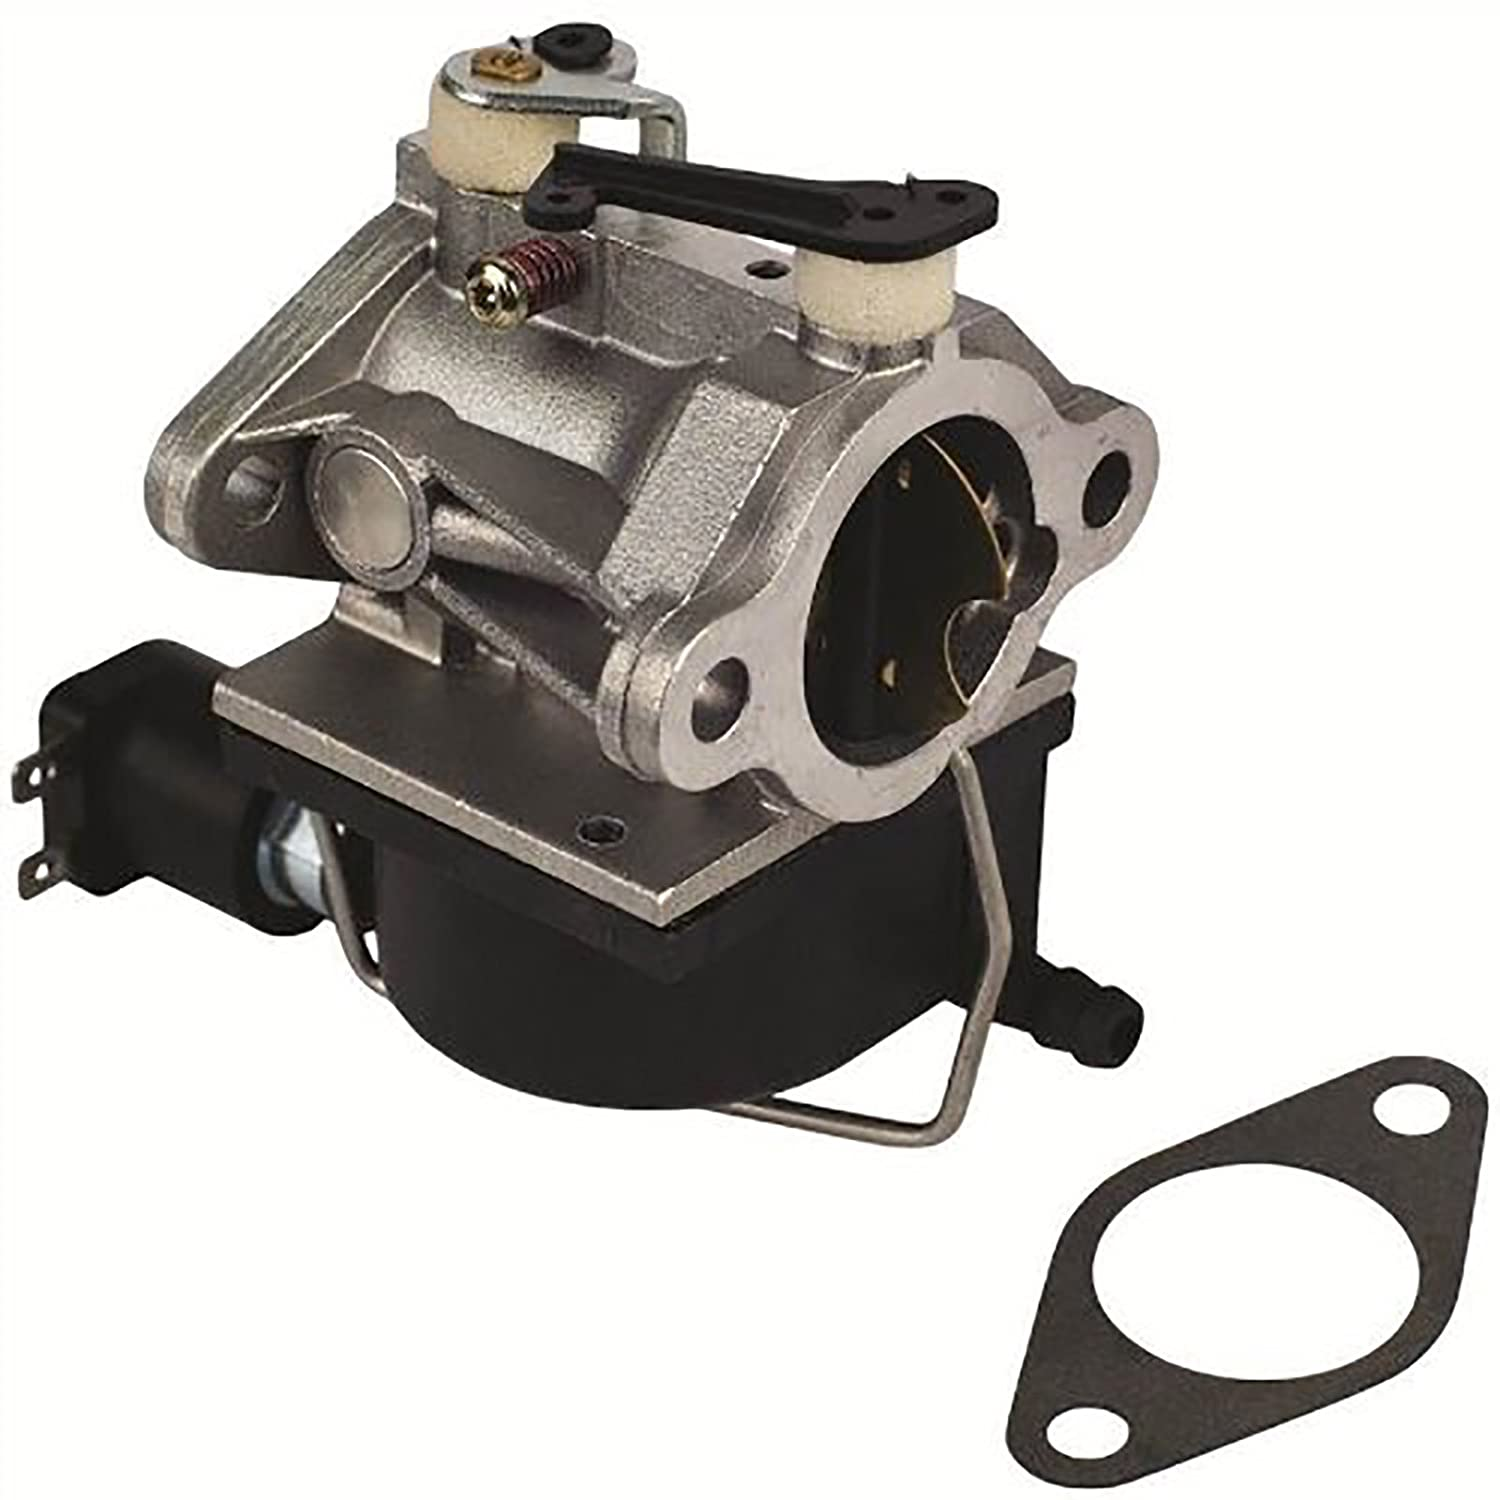 640330 640330a Tecumseh Carburetor Includes Fuel Shut Ohv Engine Diagram Exploded Off Solenoid Garden Outdoor